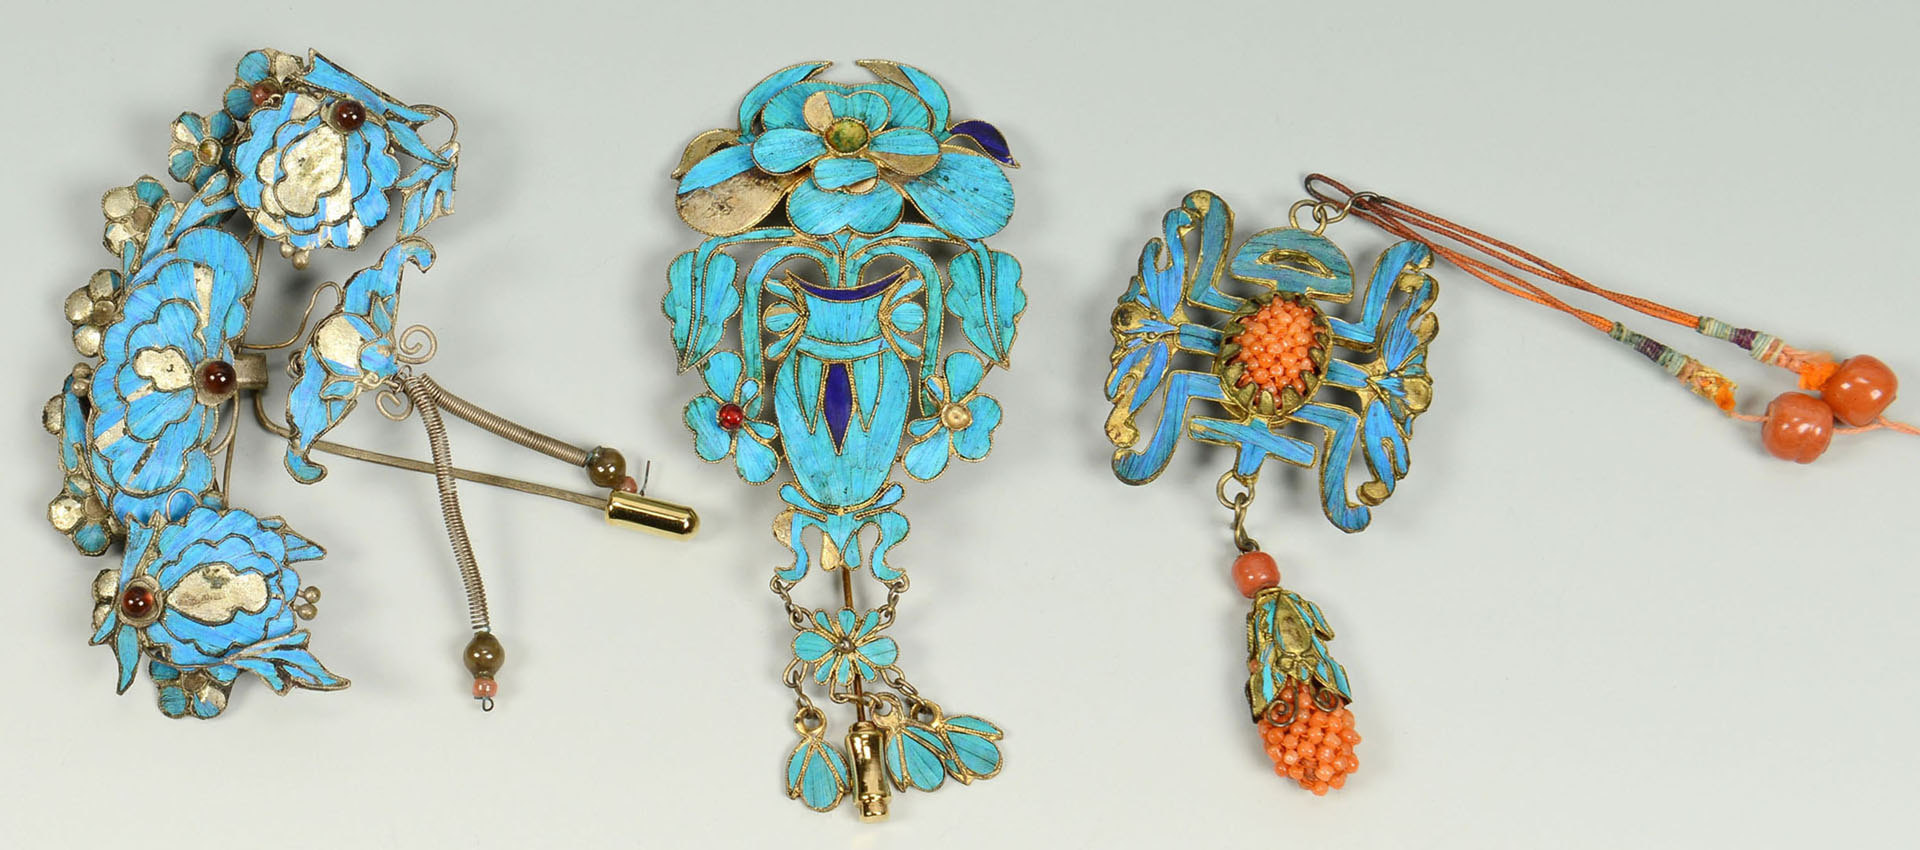 Lot 2: 3 Chinese Kingfisher Ornaments